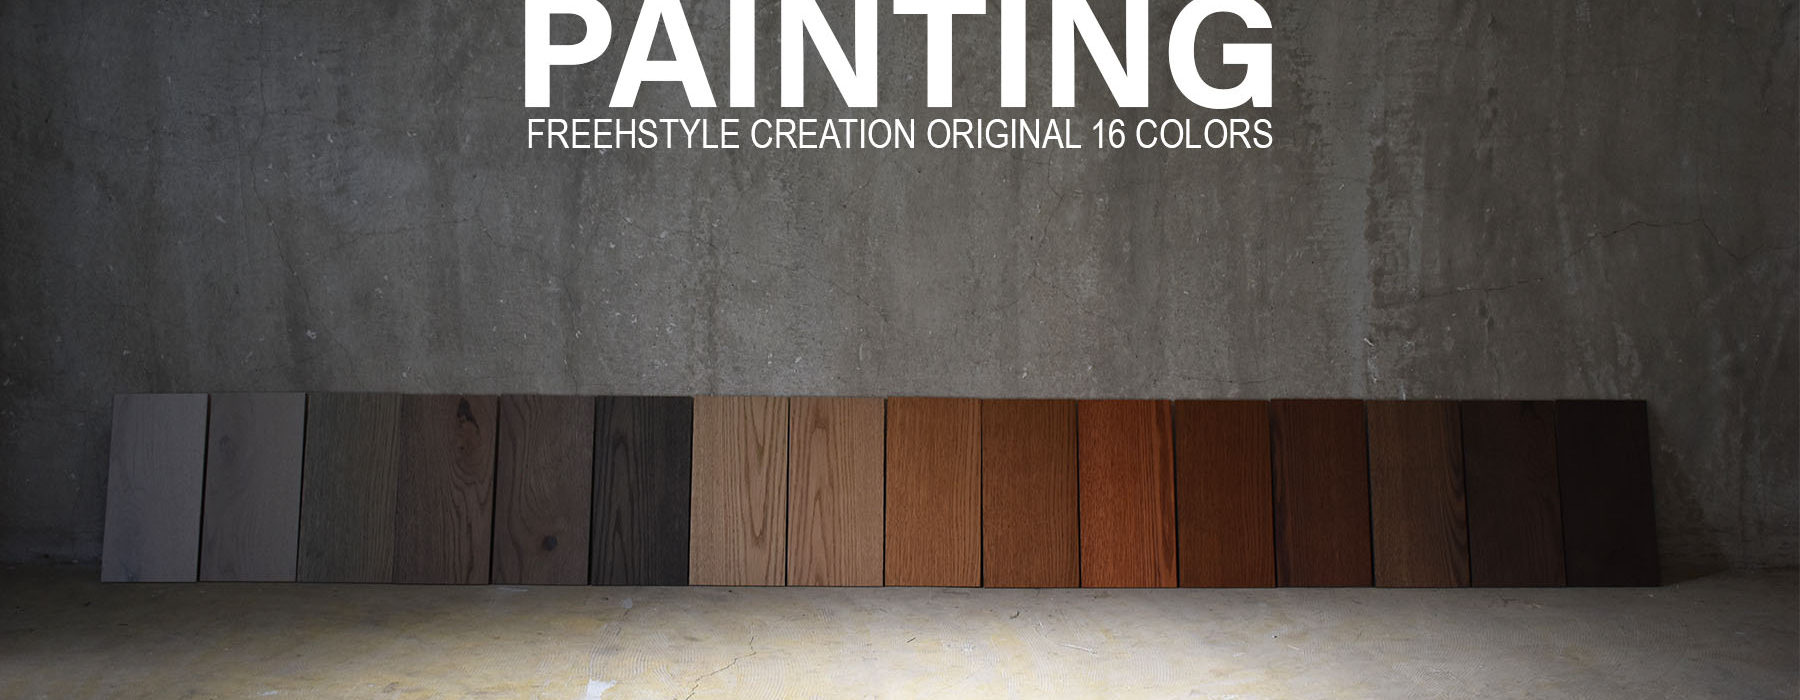 FREEHSTYLE CREATION ORIGINAL 16COLORS